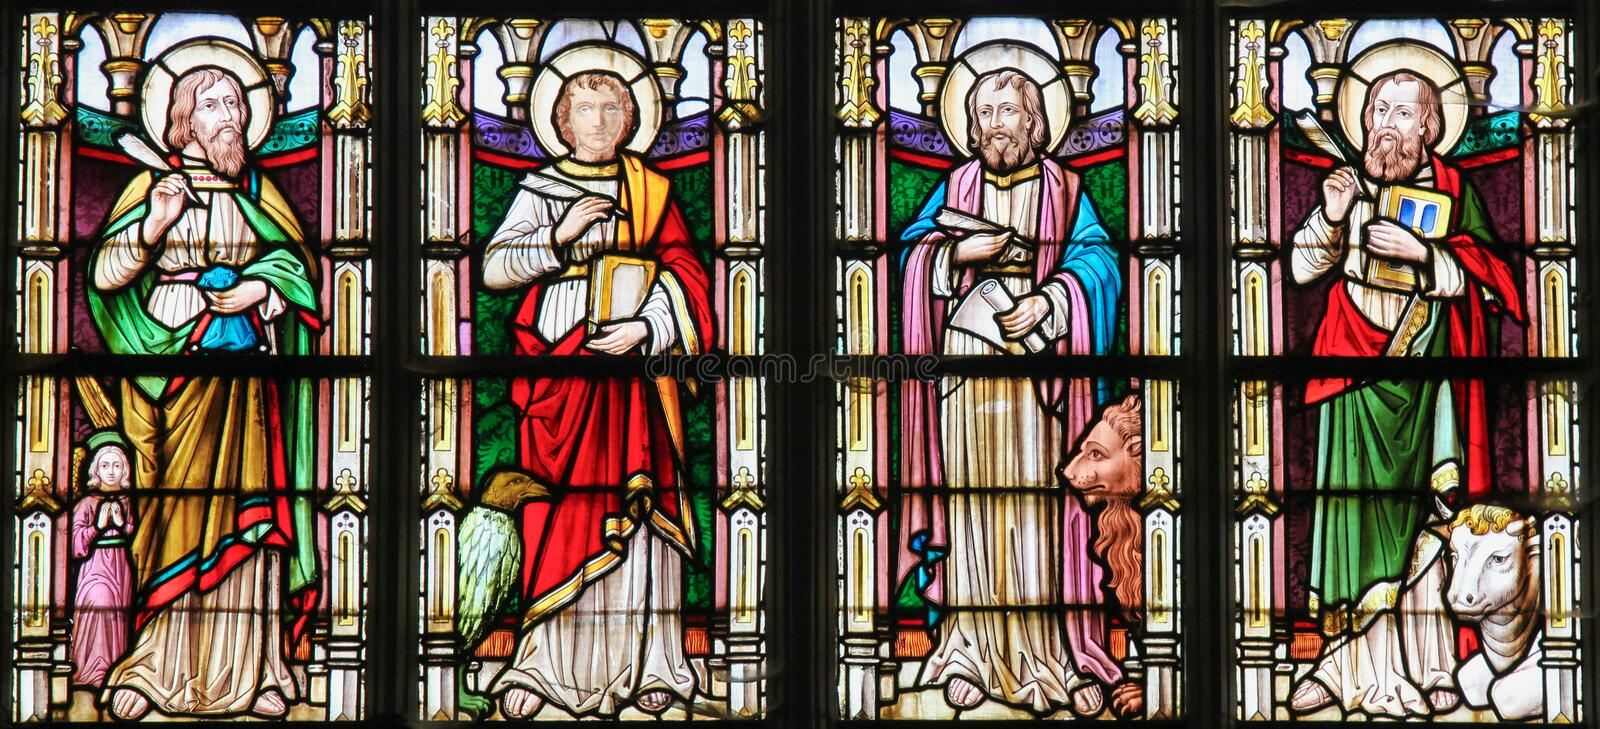 Stained Glass depicting the Four Evangelists. Stained glass window depicting the Four Evangelists, Saint Matthew, Saint John, Saint Mark and Saint Luke, in the royalty free stock image